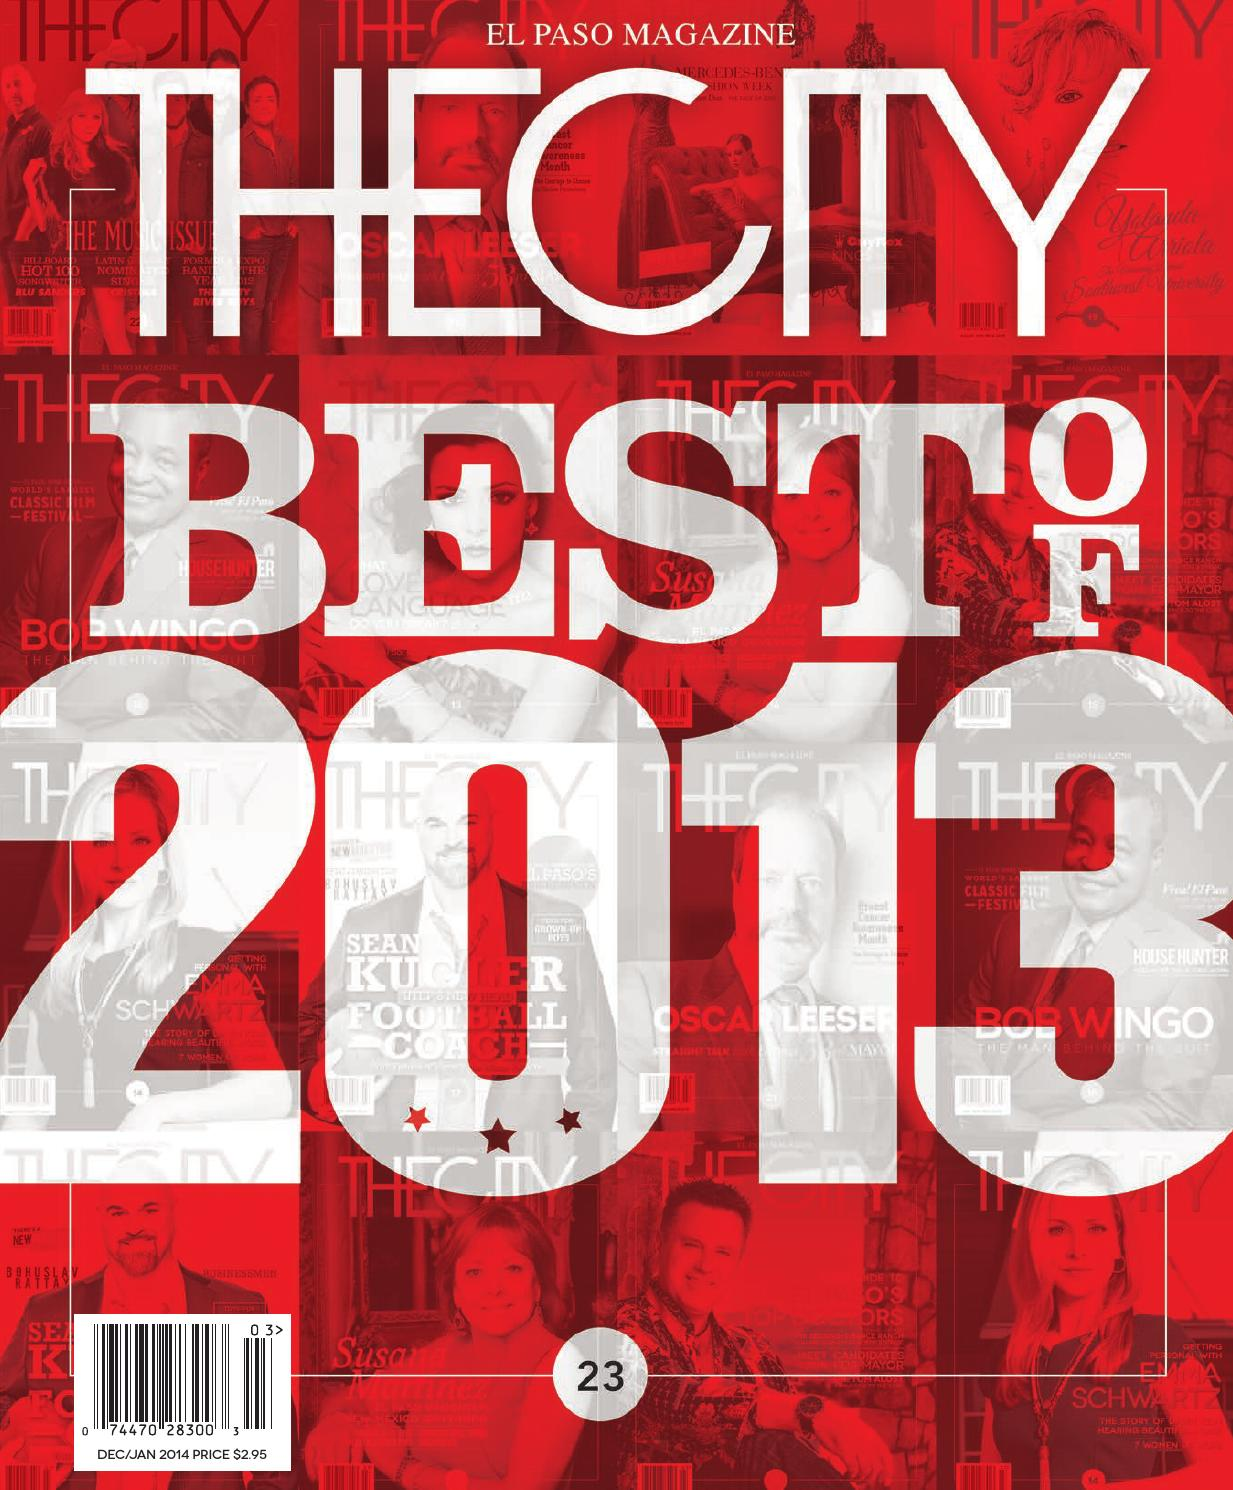 The city magazine decemberjanuary 2014 by the city magazine el the city magazine decemberjanuary 2014 by the city magazine el pasolas cruces issuu aiddatafo Gallery